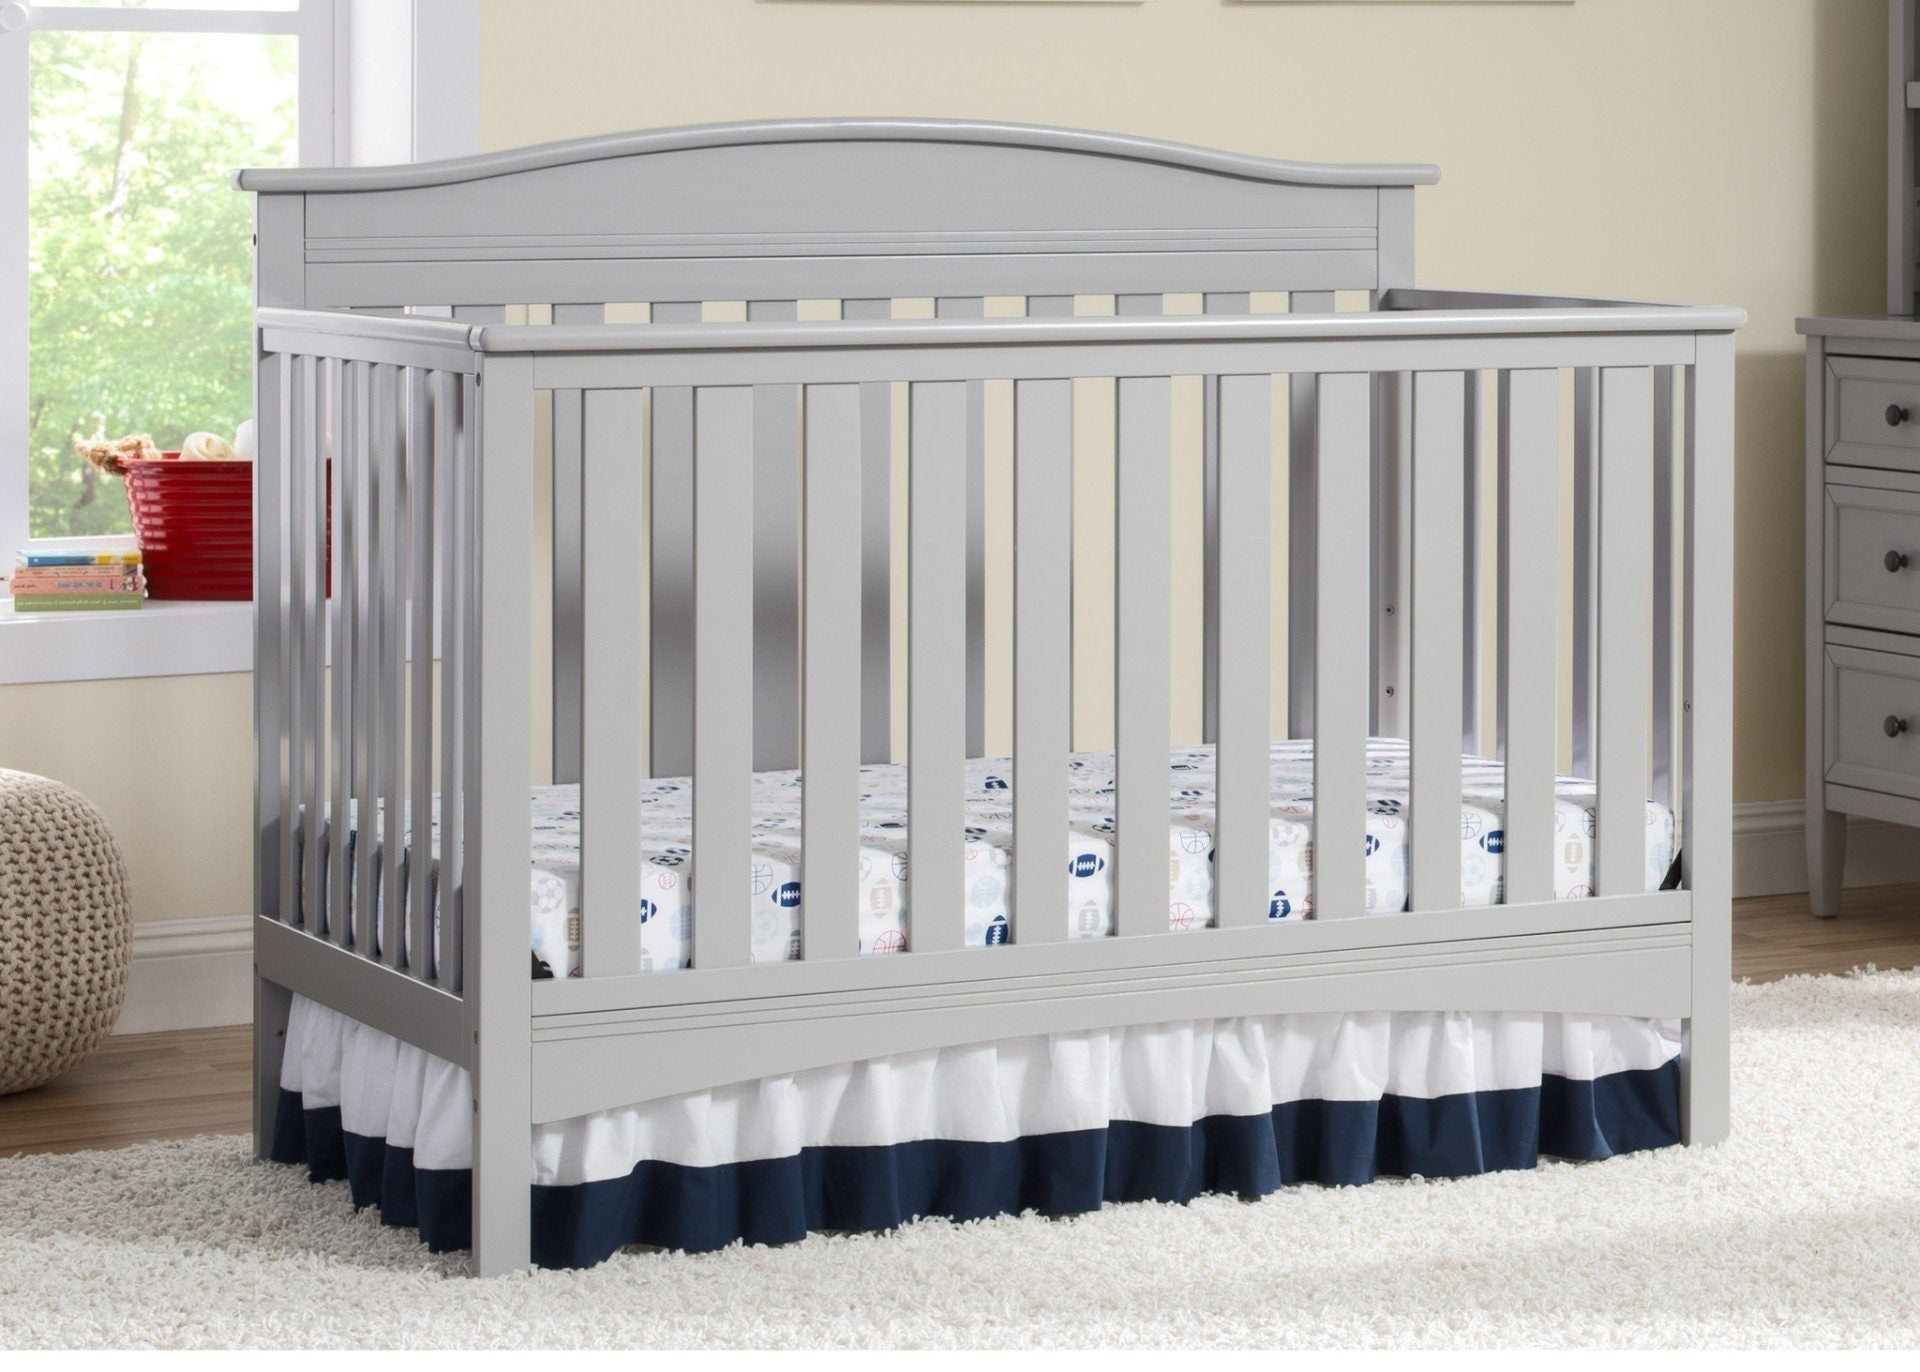 Delta Children Grey (026) Bakerton 4-in-1 Crib Room View a1a